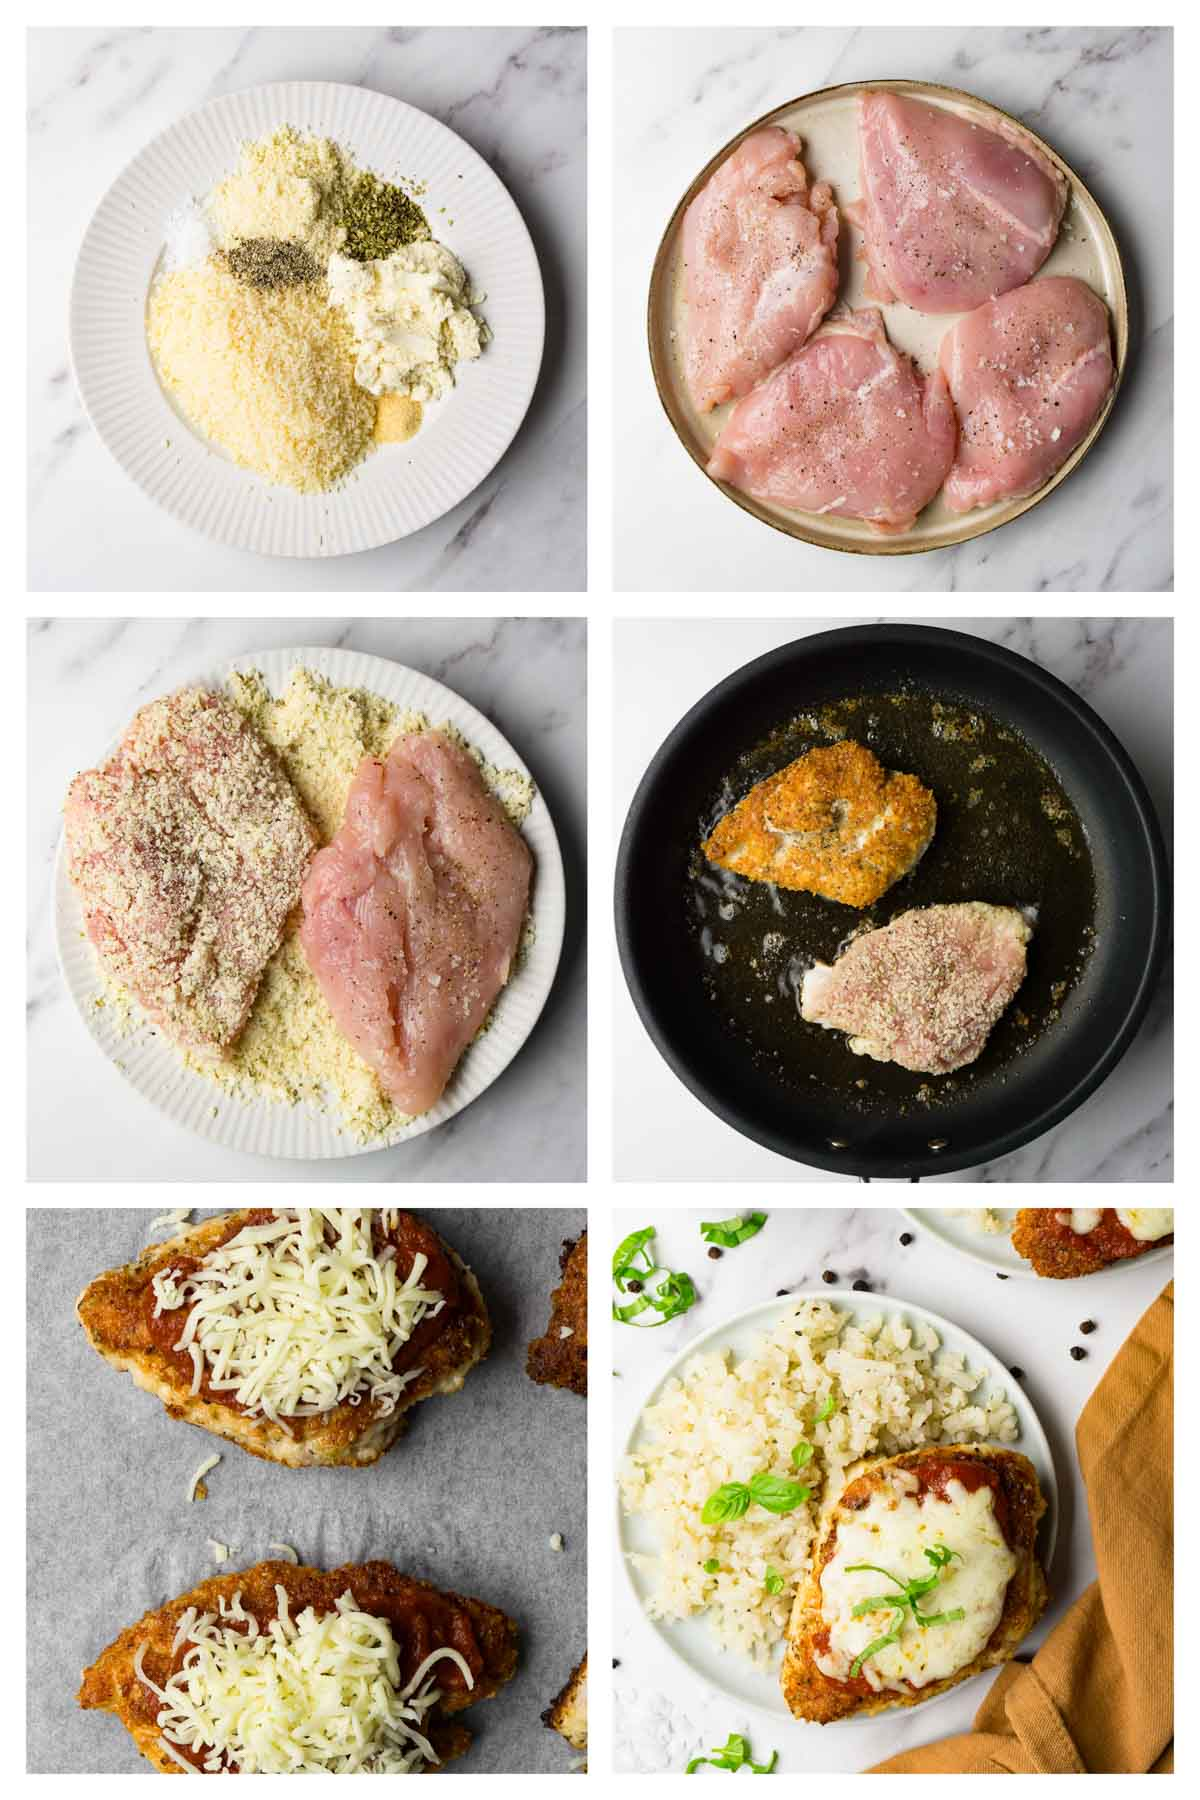 6 steps collage image showing how to make keto chicken parmesan.